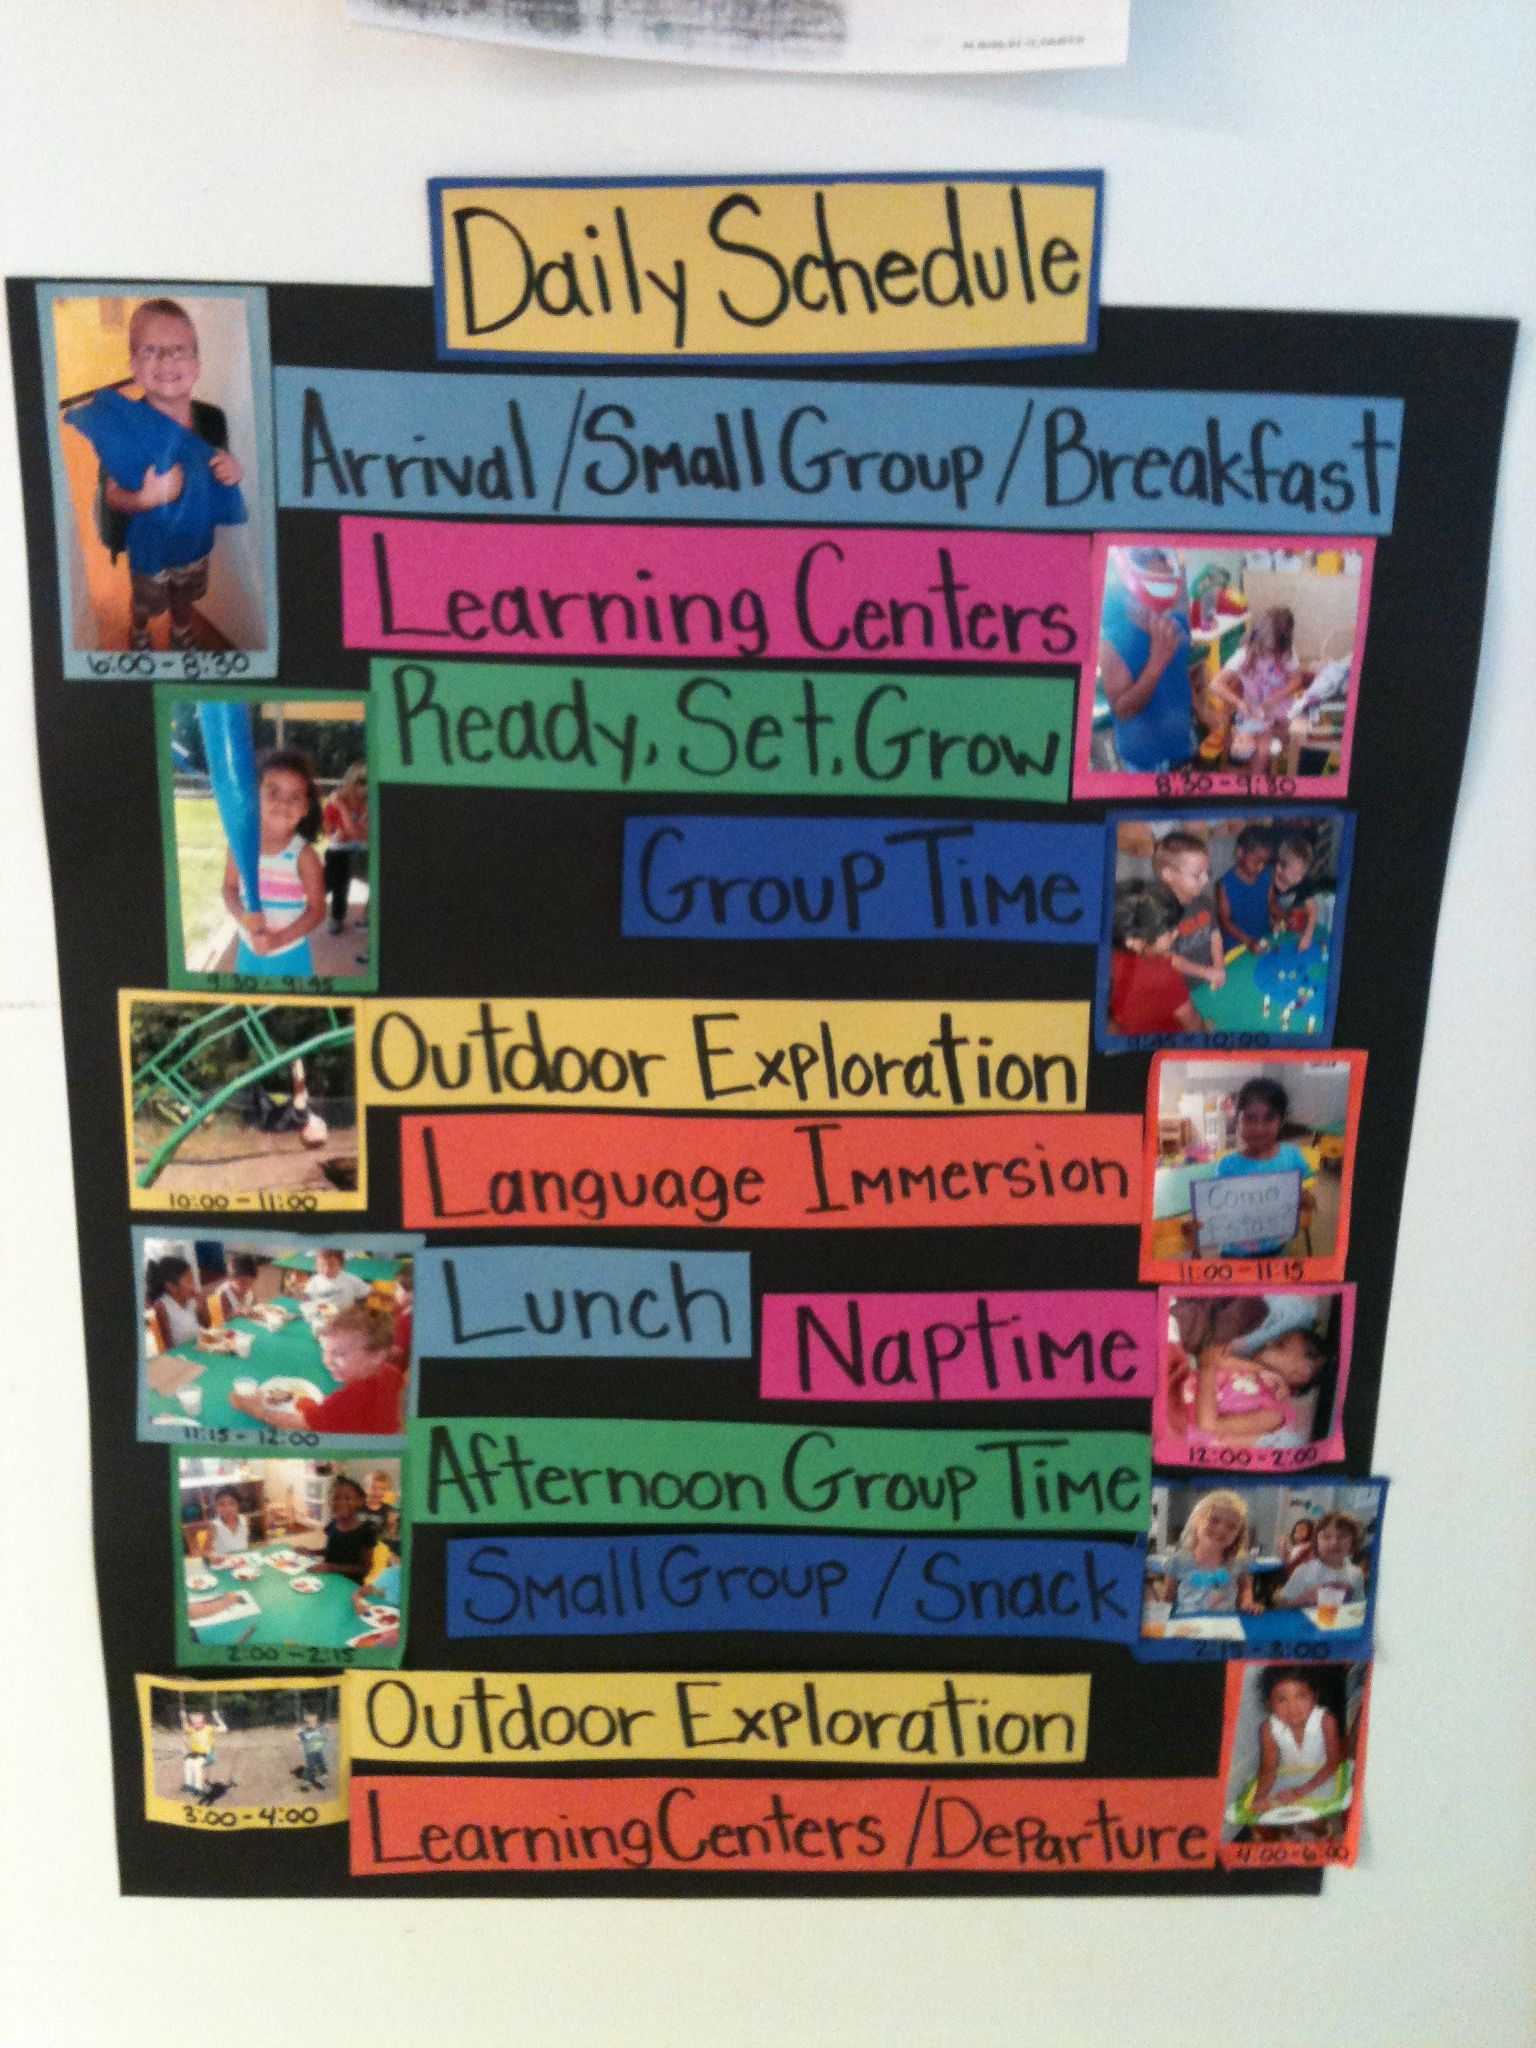 Daily Picture Schedule Rainbow Child Care Center